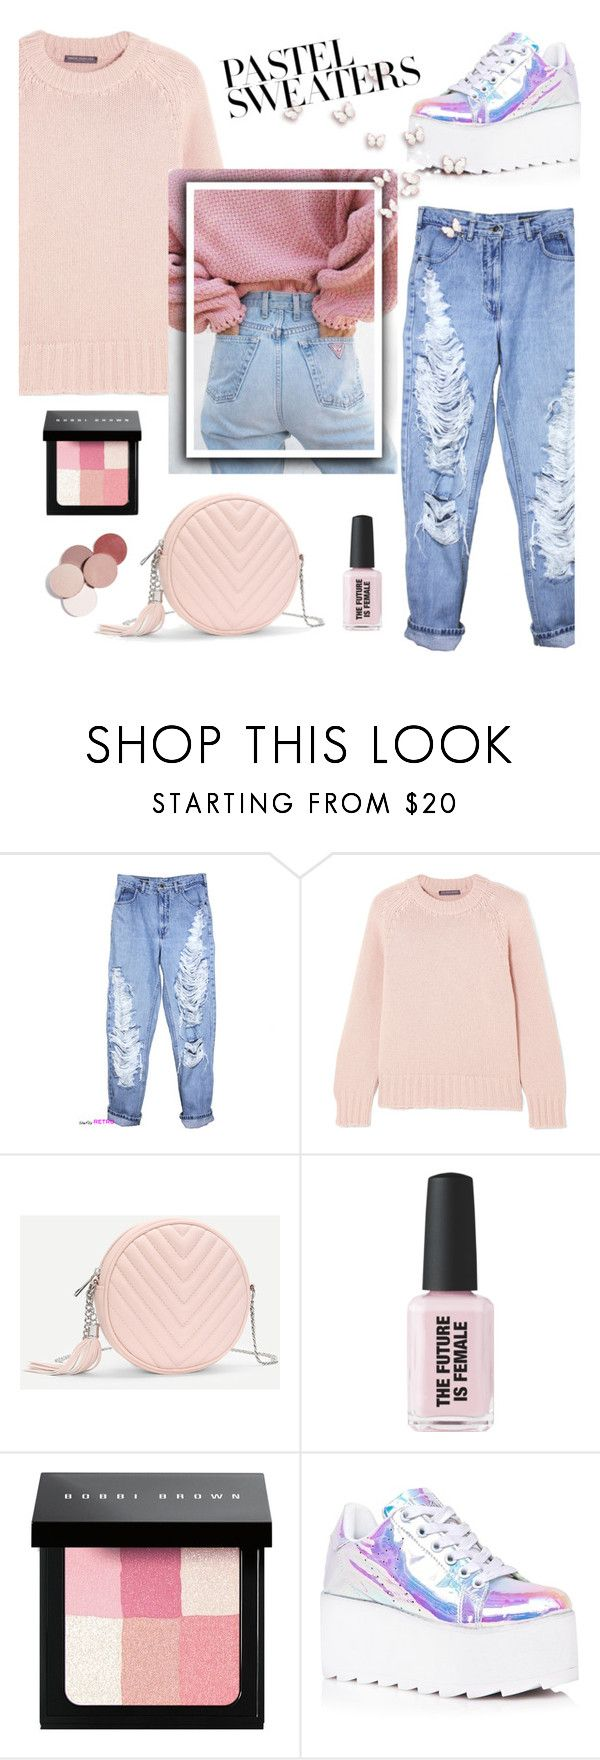 """Give me one more chance girl"" by holography ❤ liked on Polyvore featuring Alexander McQueen, Bobbi Brown Cosmetics, Y.R.U., LunatiCK Cosmetic Labs and pastelsweaters"